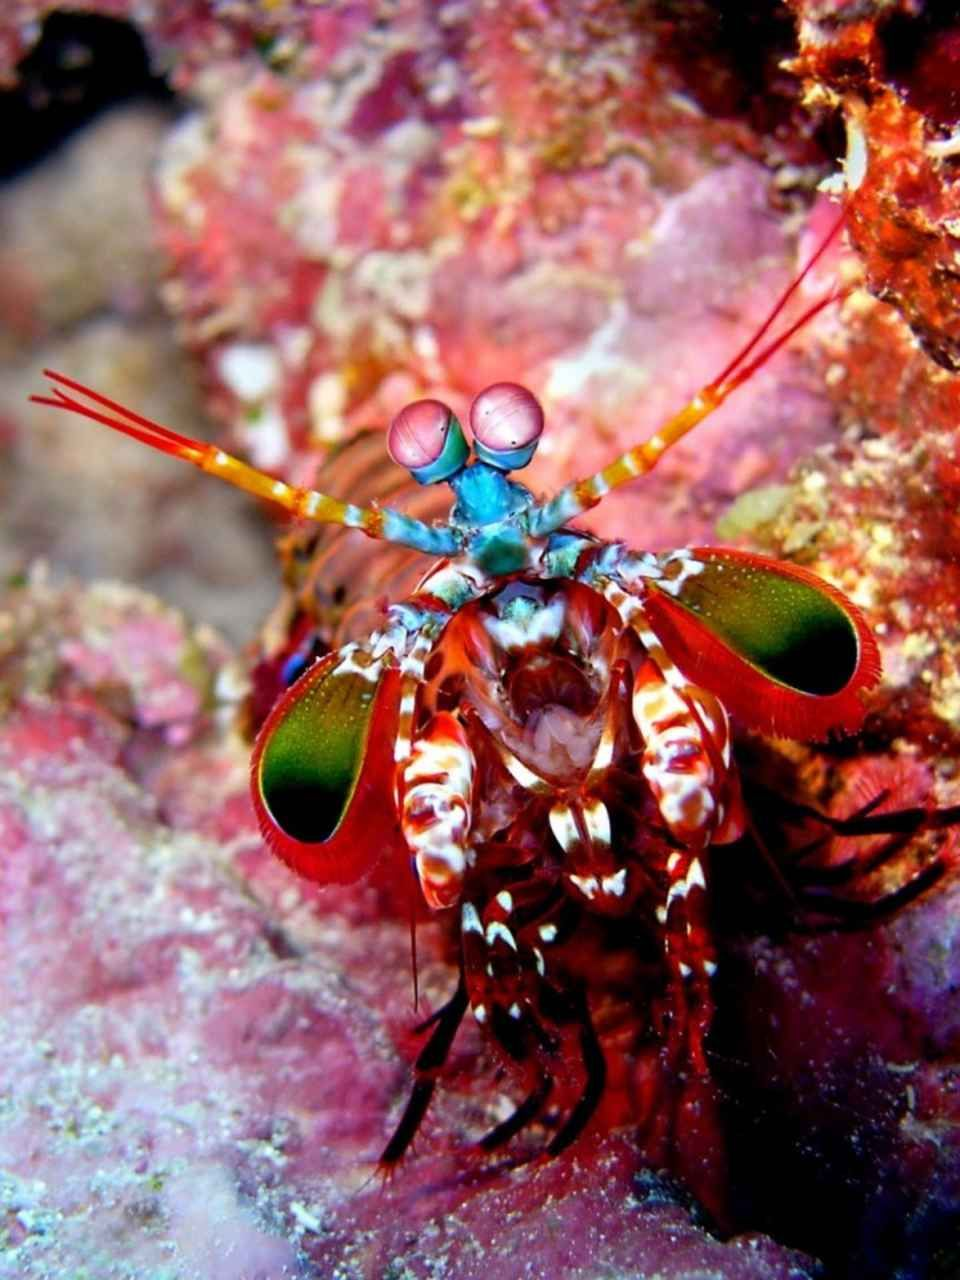 28 Of The Most Colourful Animals in the World | Colorful animals ...